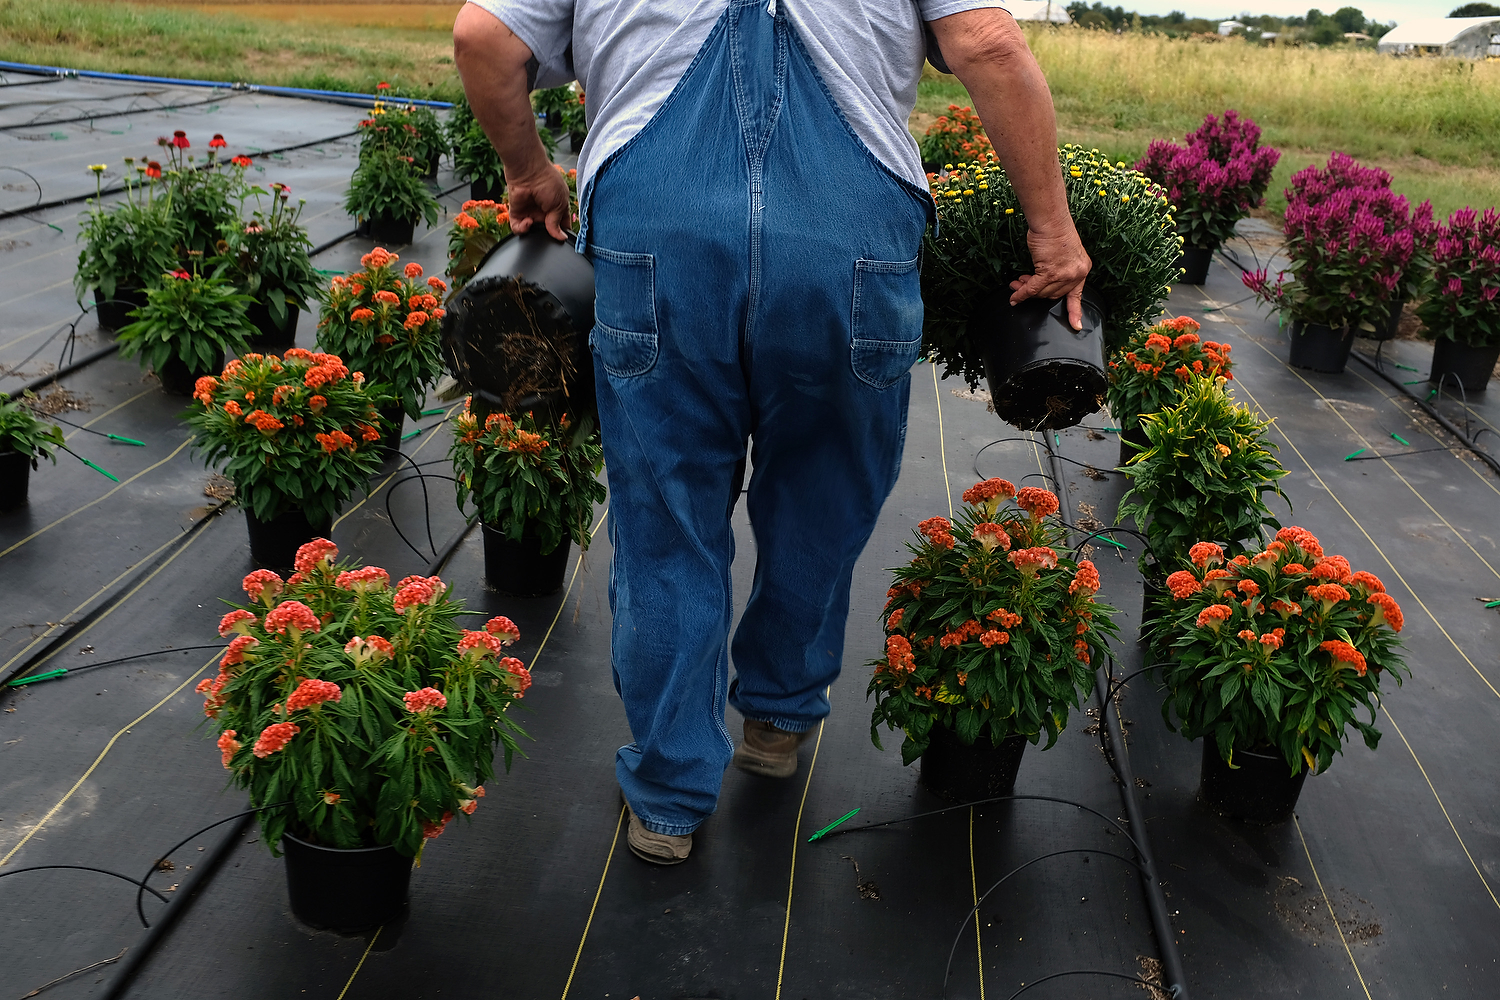 During his day off, Phil visits a Mennonite farm to buy flowers to decorate the front porch of his house.